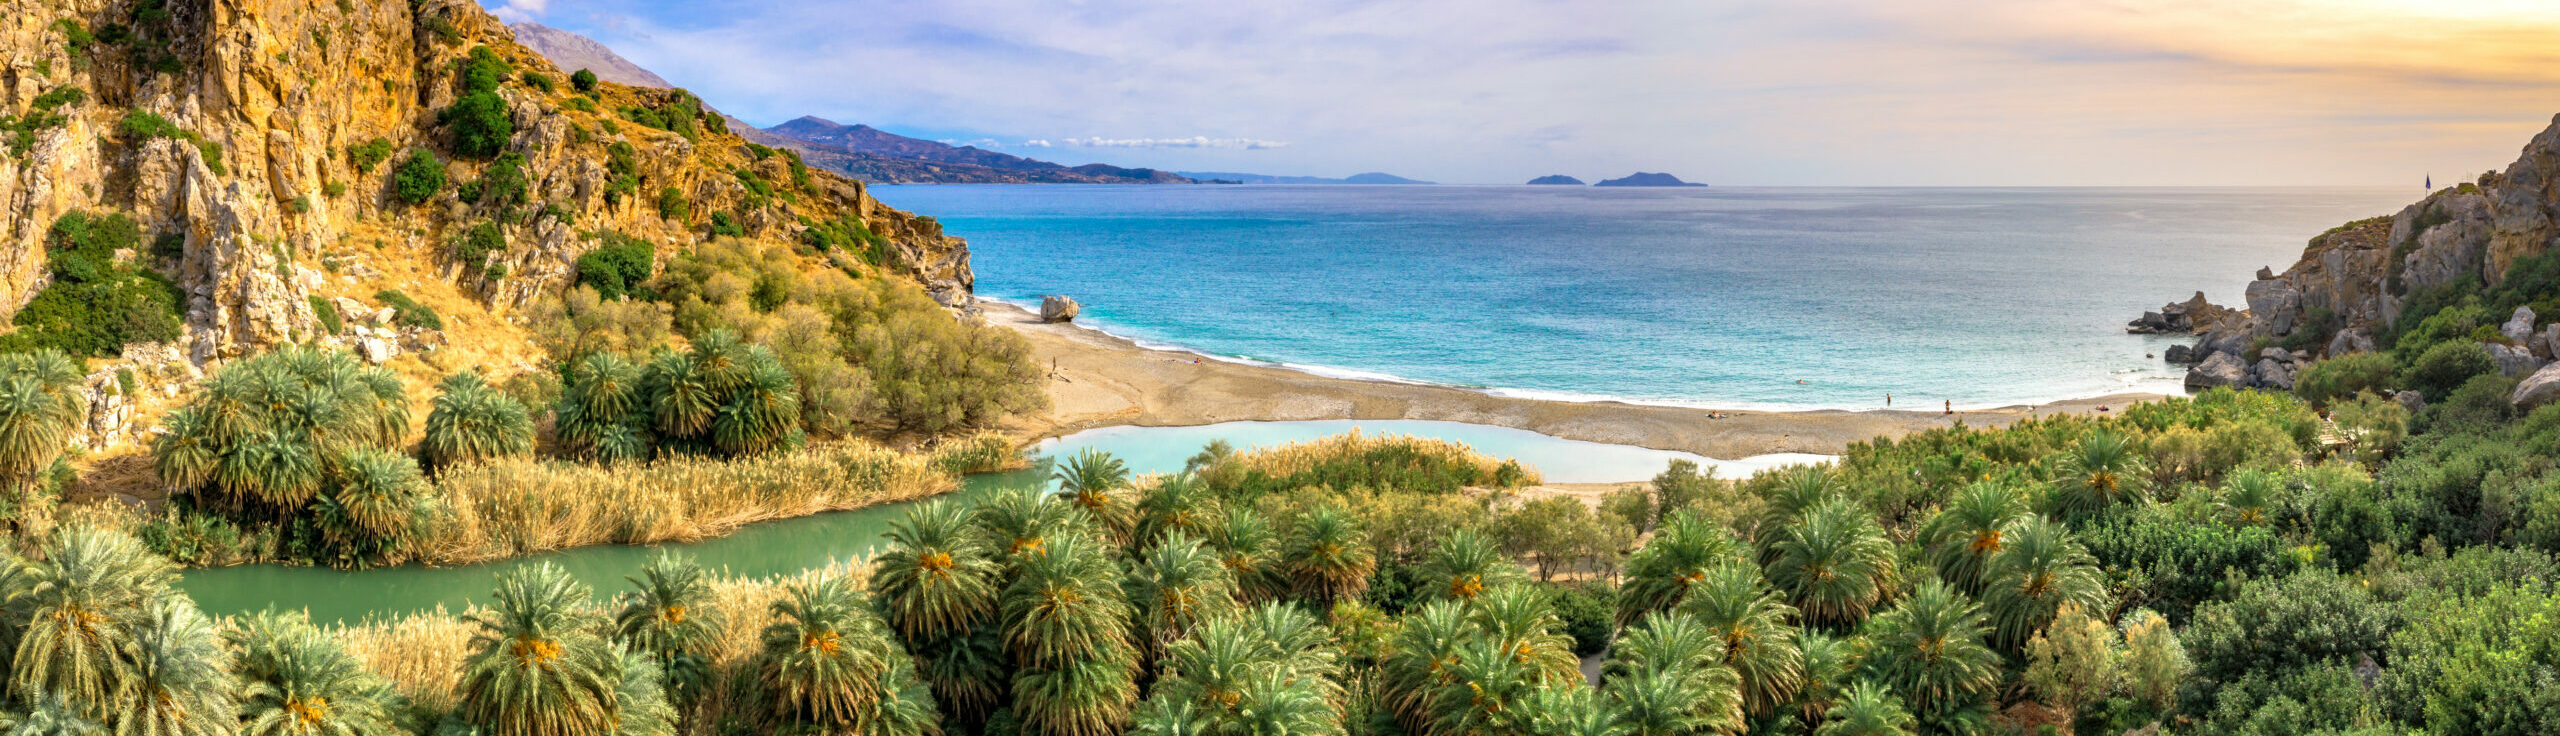 The Greek beach that looks like an African oasis